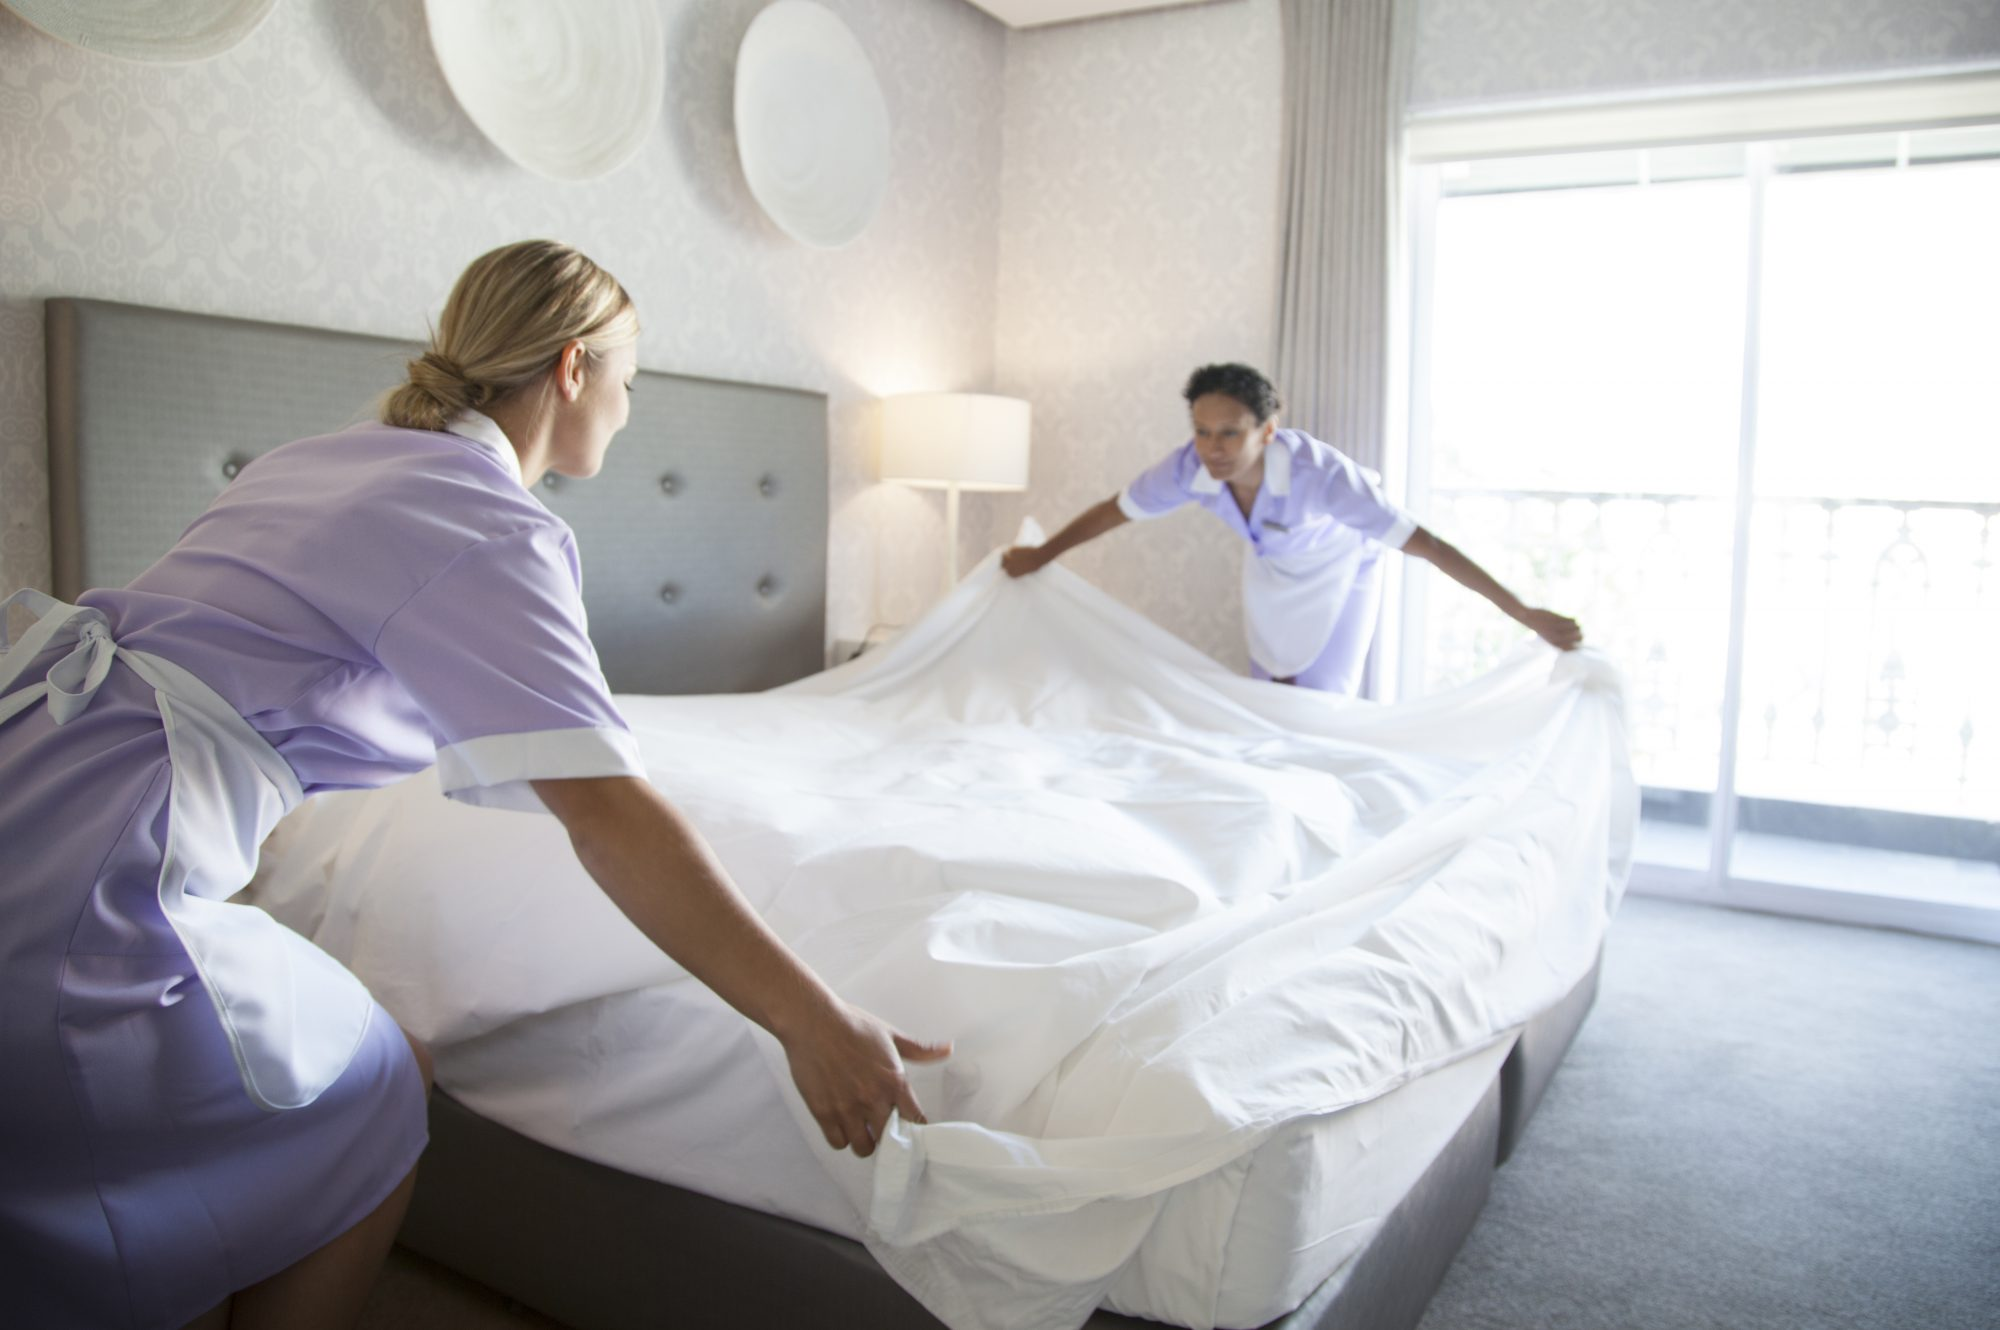 Chambermaids making bed in hotel room